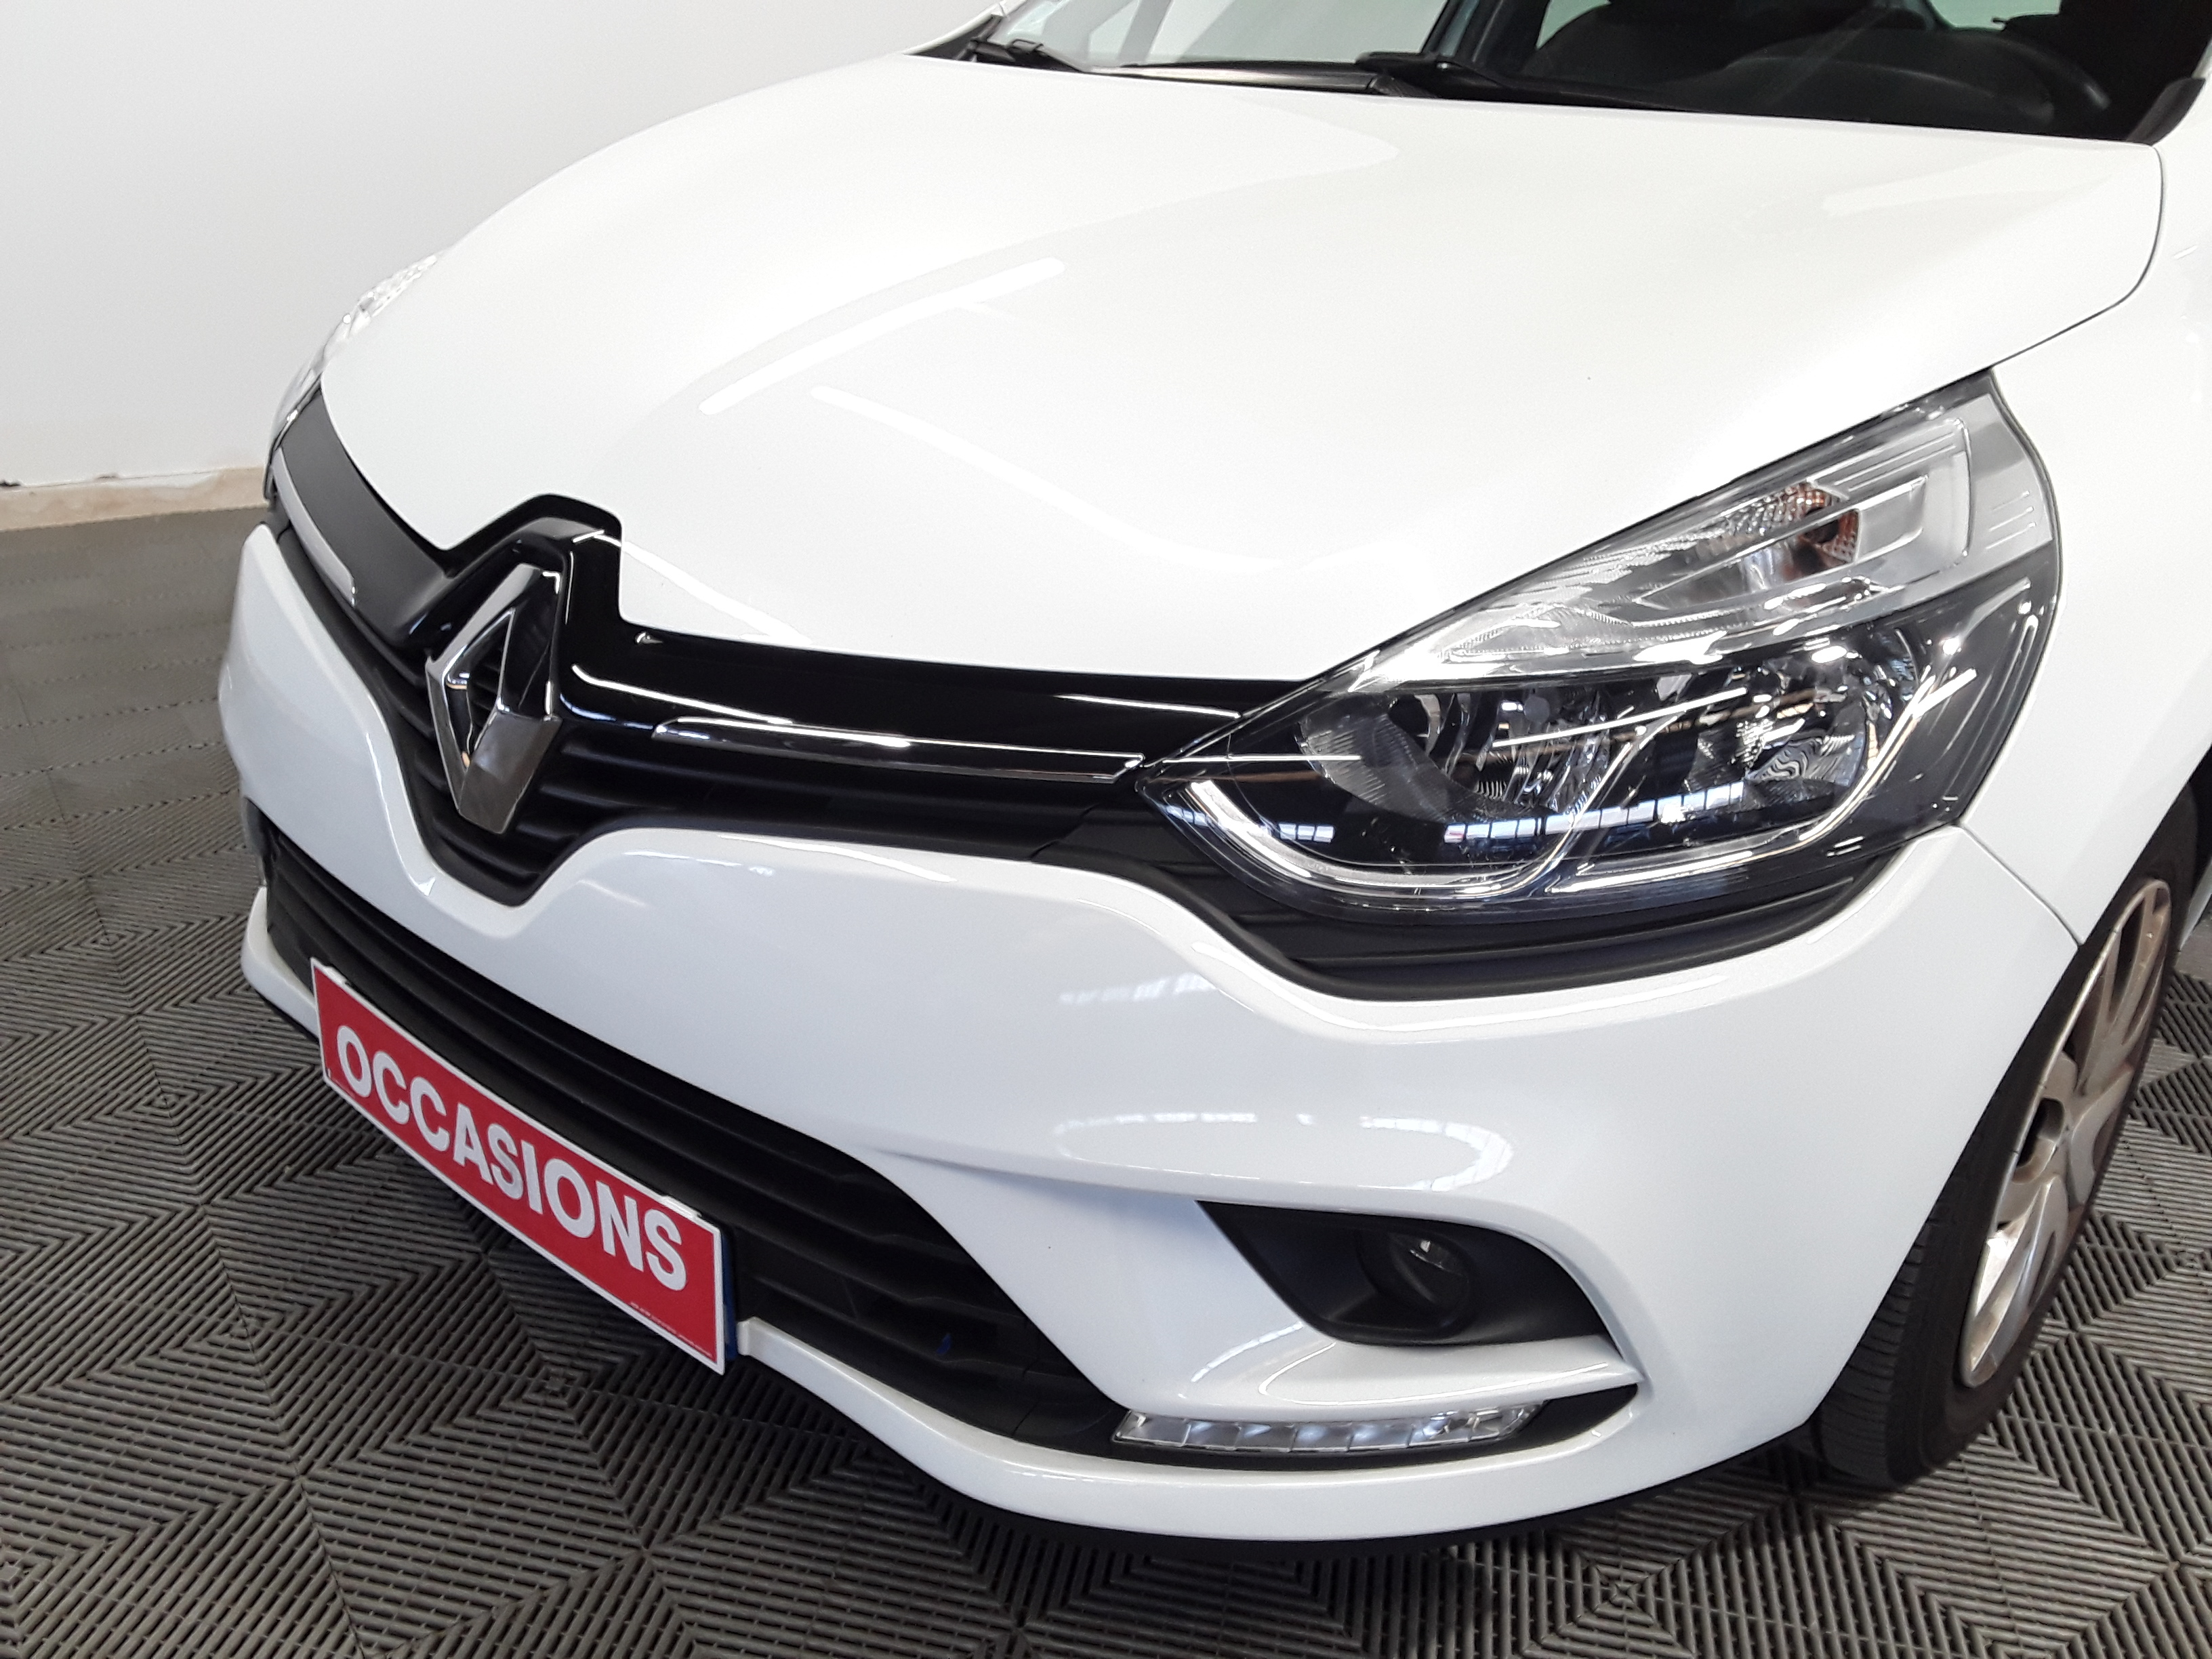 RENAULT CLIO IV BUSINESS 2019 - Photo n°3